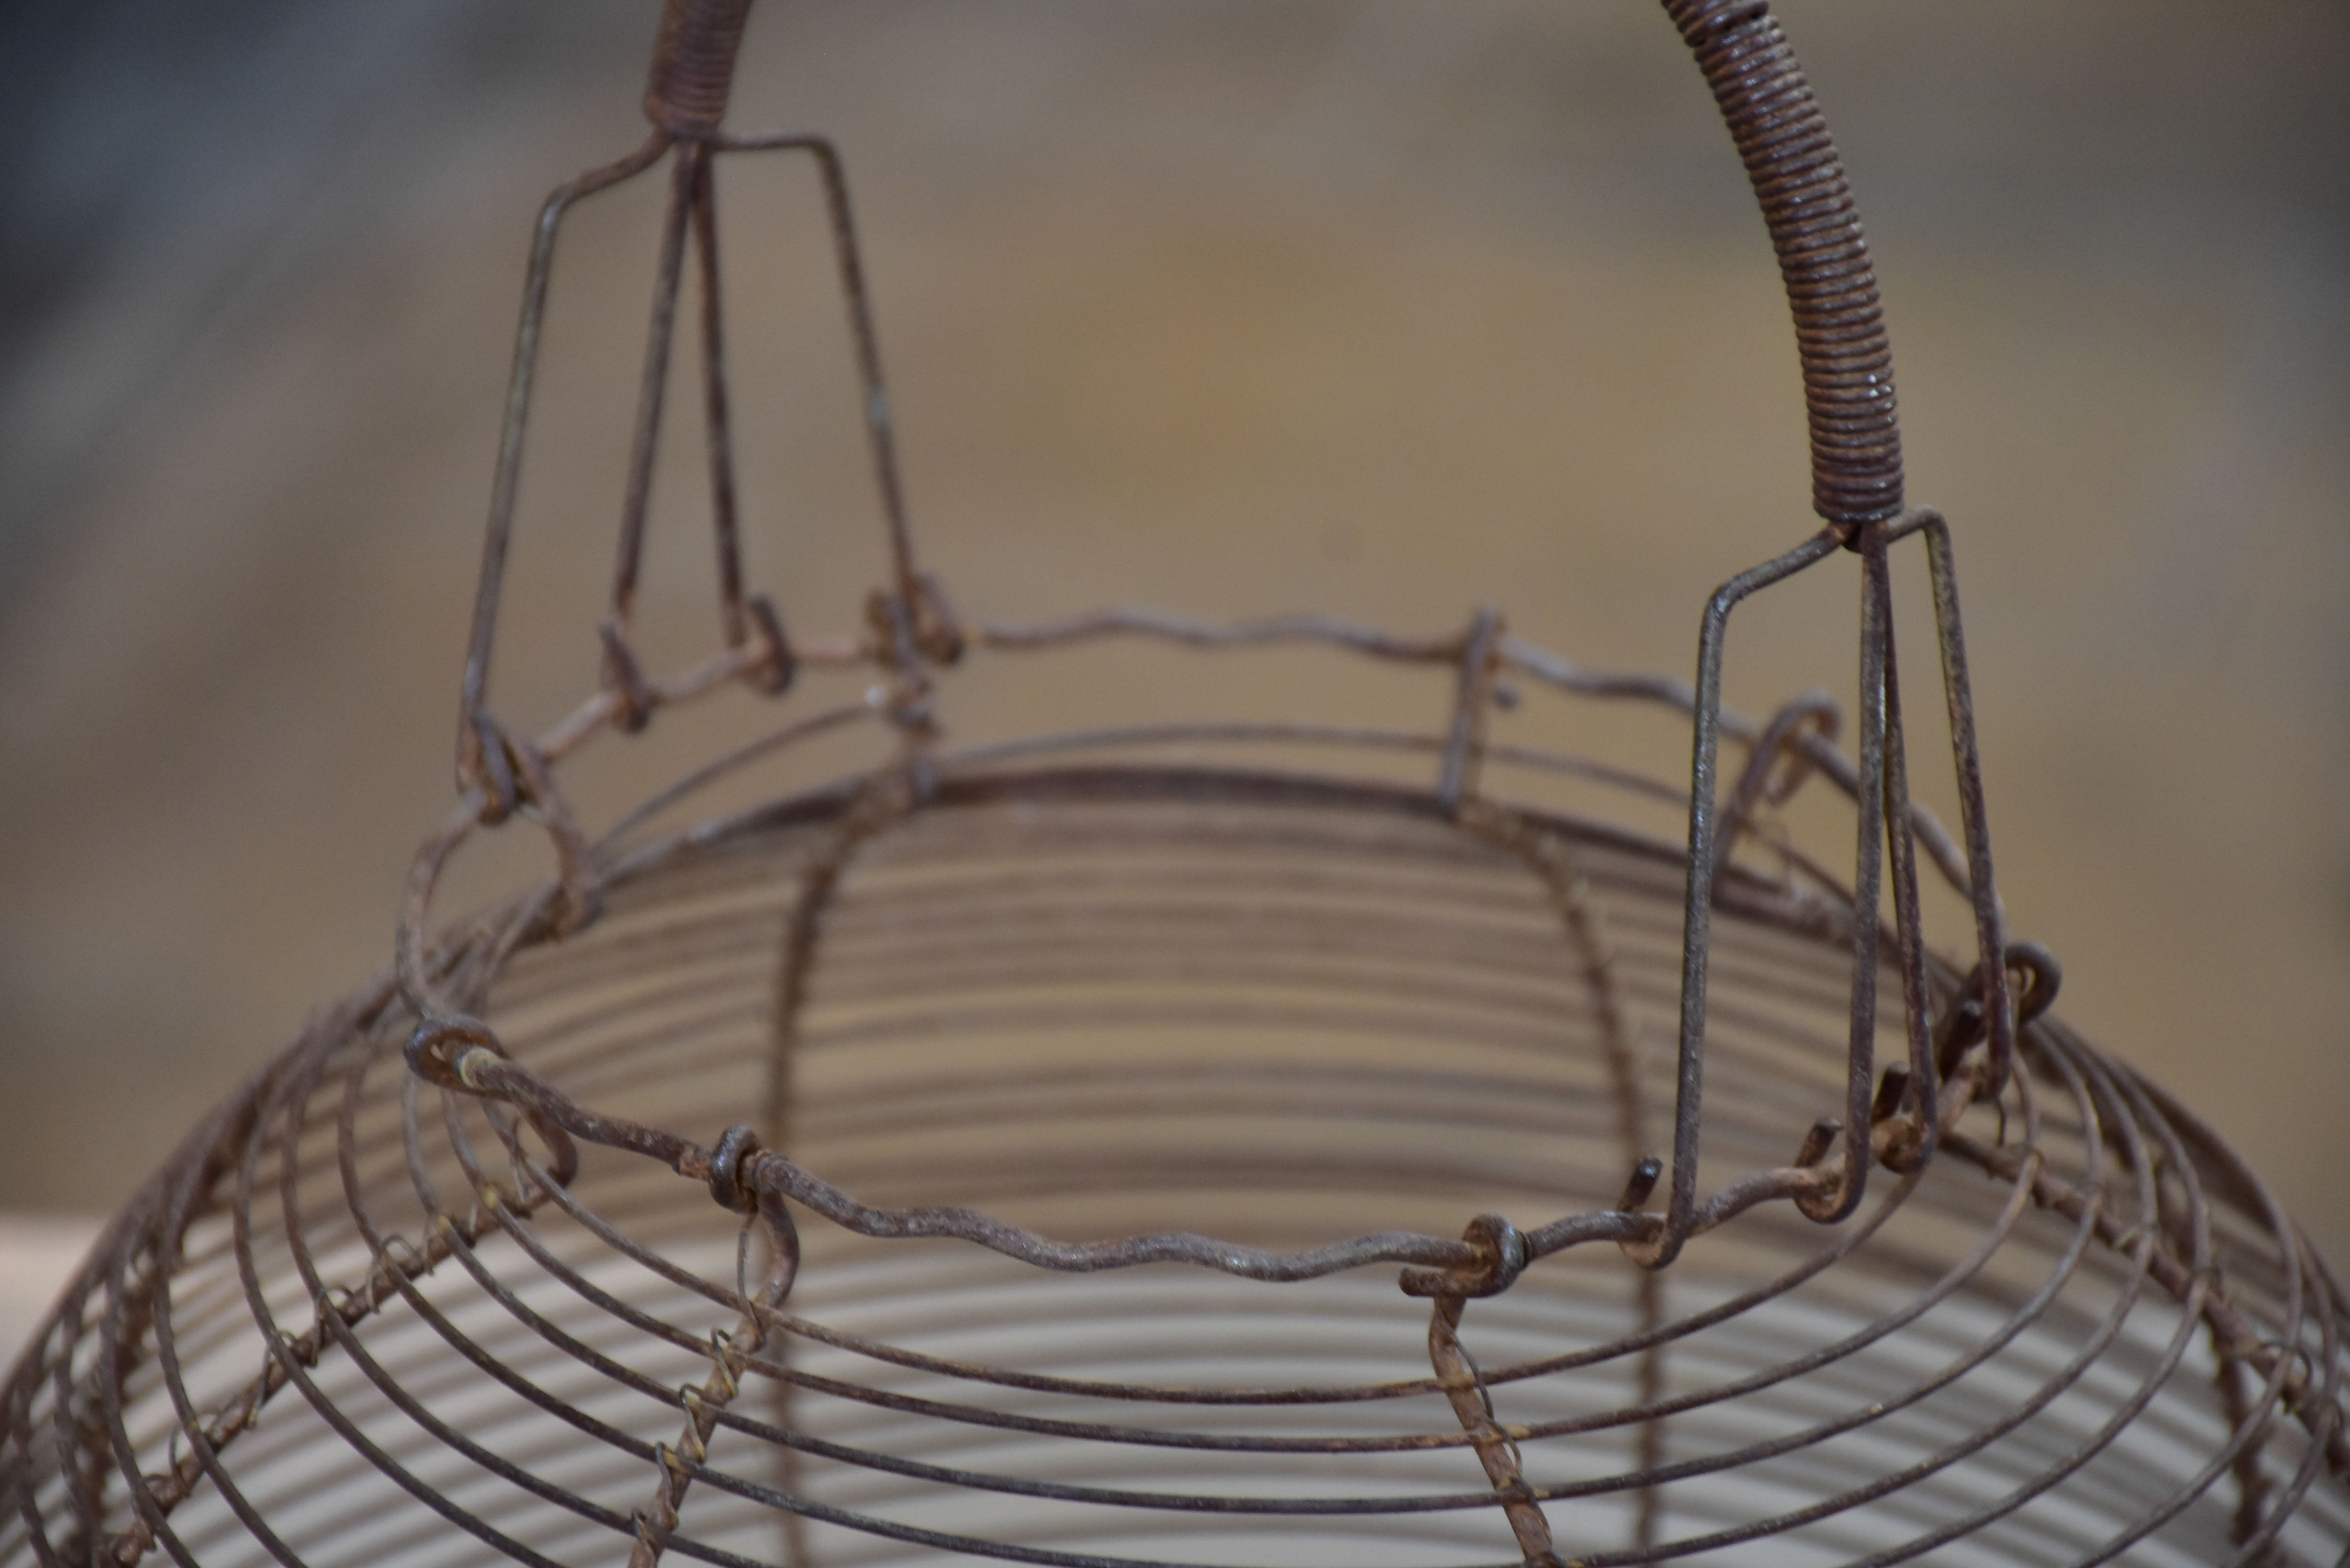 Two antique French wire baskets